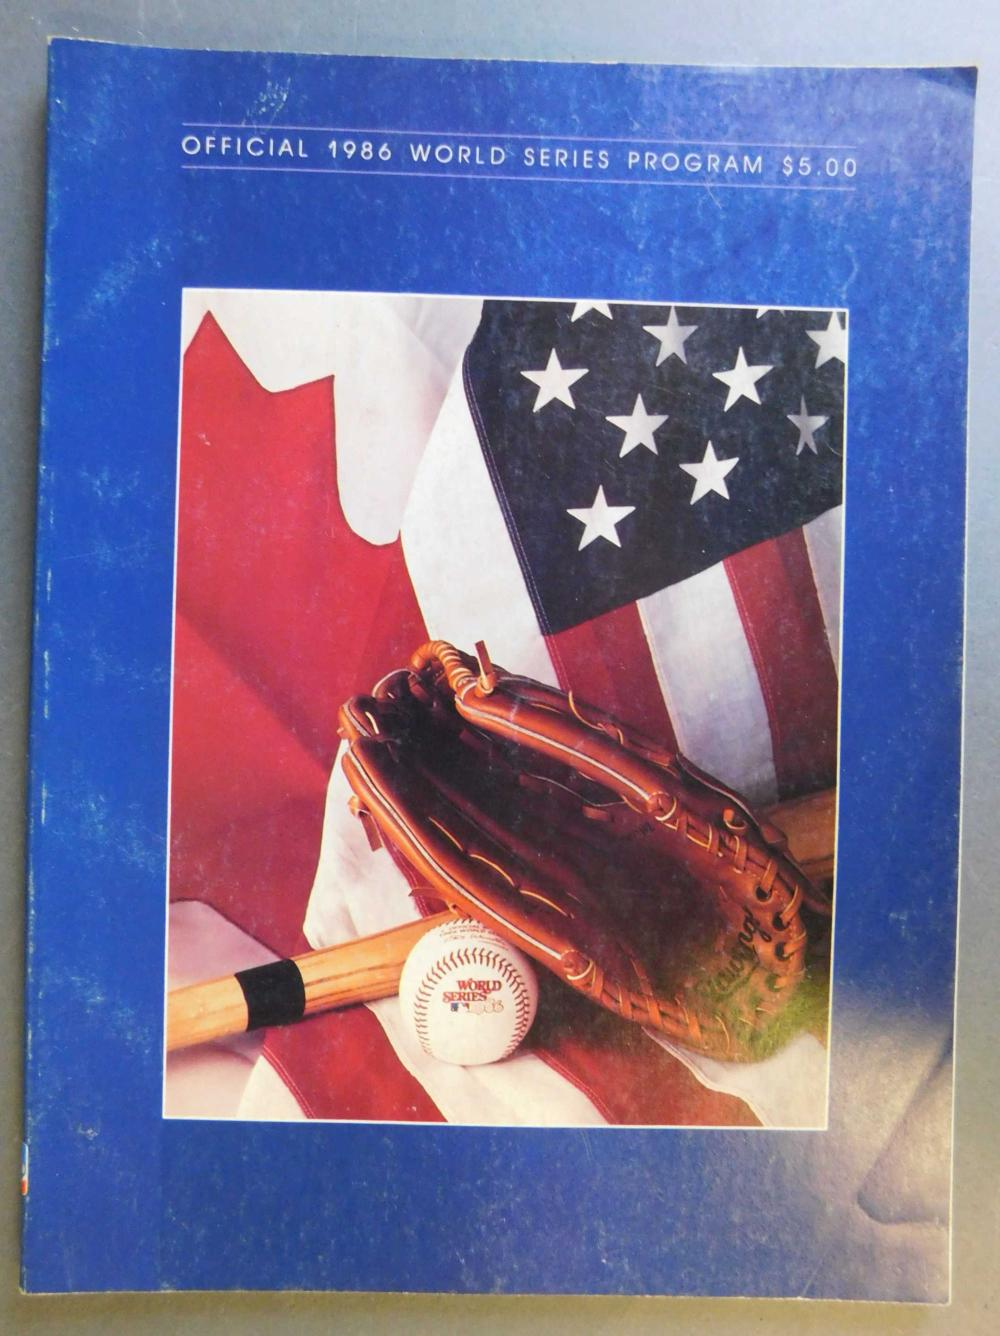 1986 World Series program signed by players: